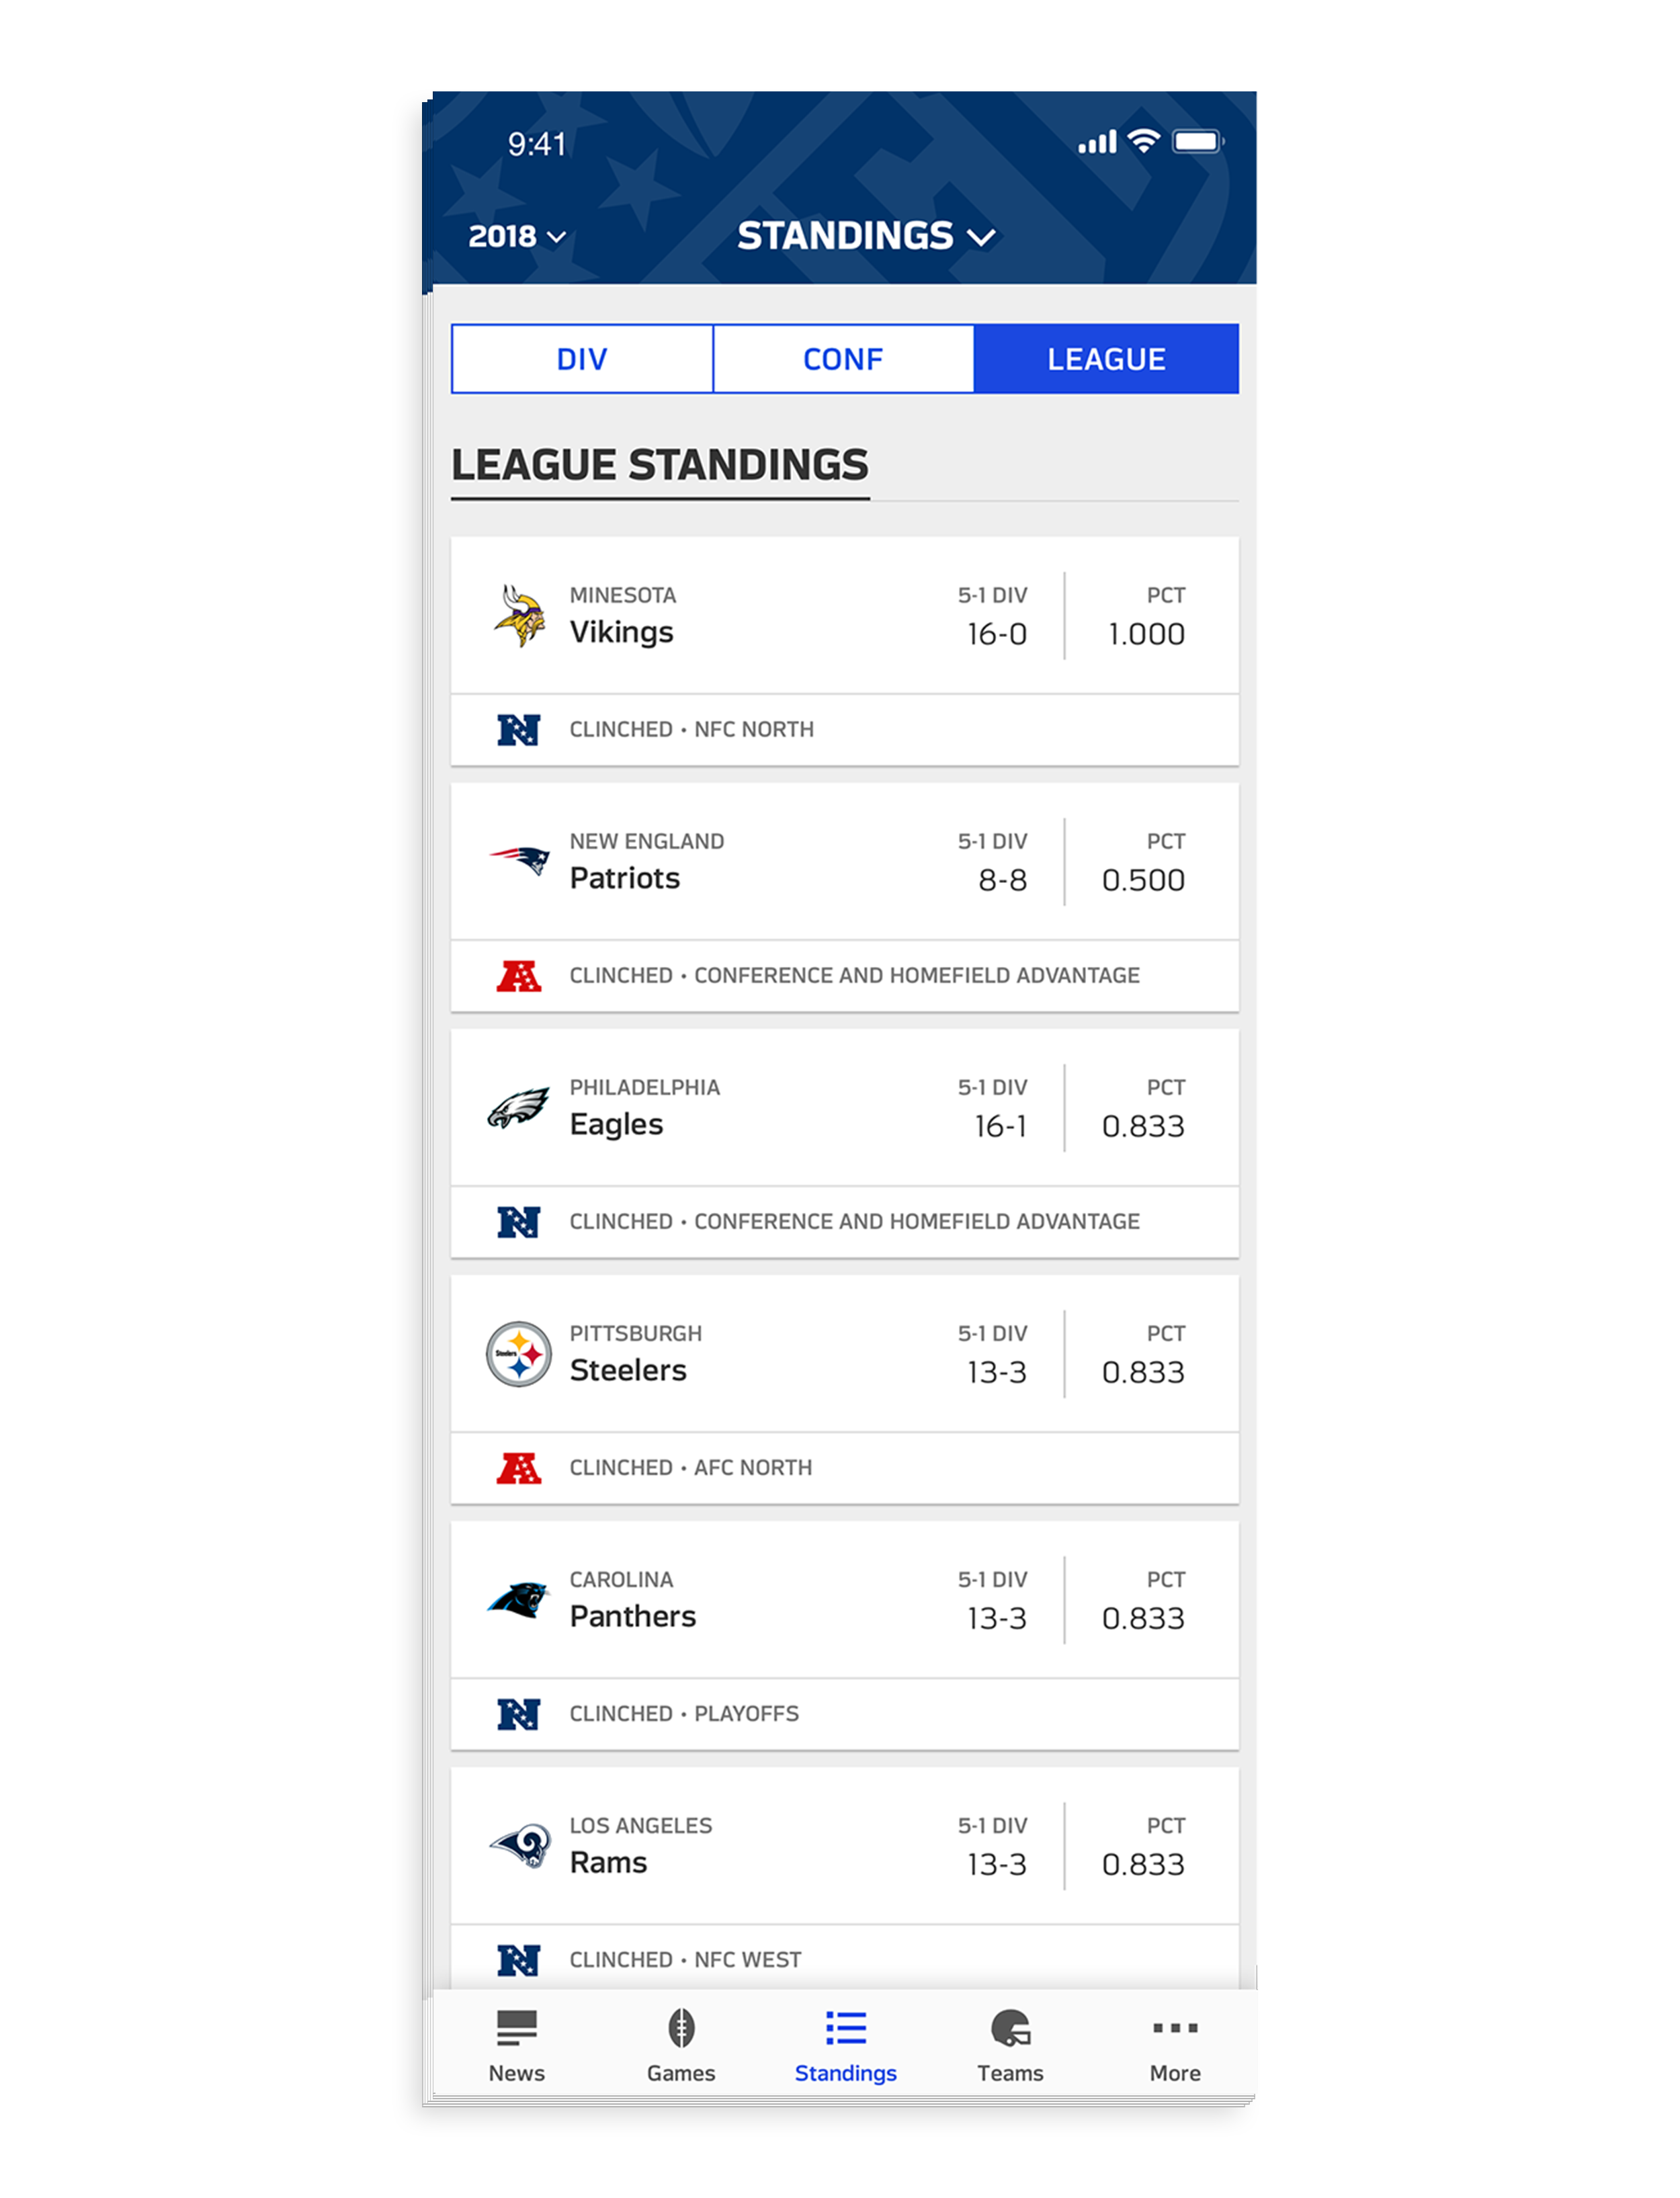 - The page divides into sections based on three ranking categories: Division, Conference and League. Each team is listed by season record, and the teams that clinched playoff spots have an info bar attached below.